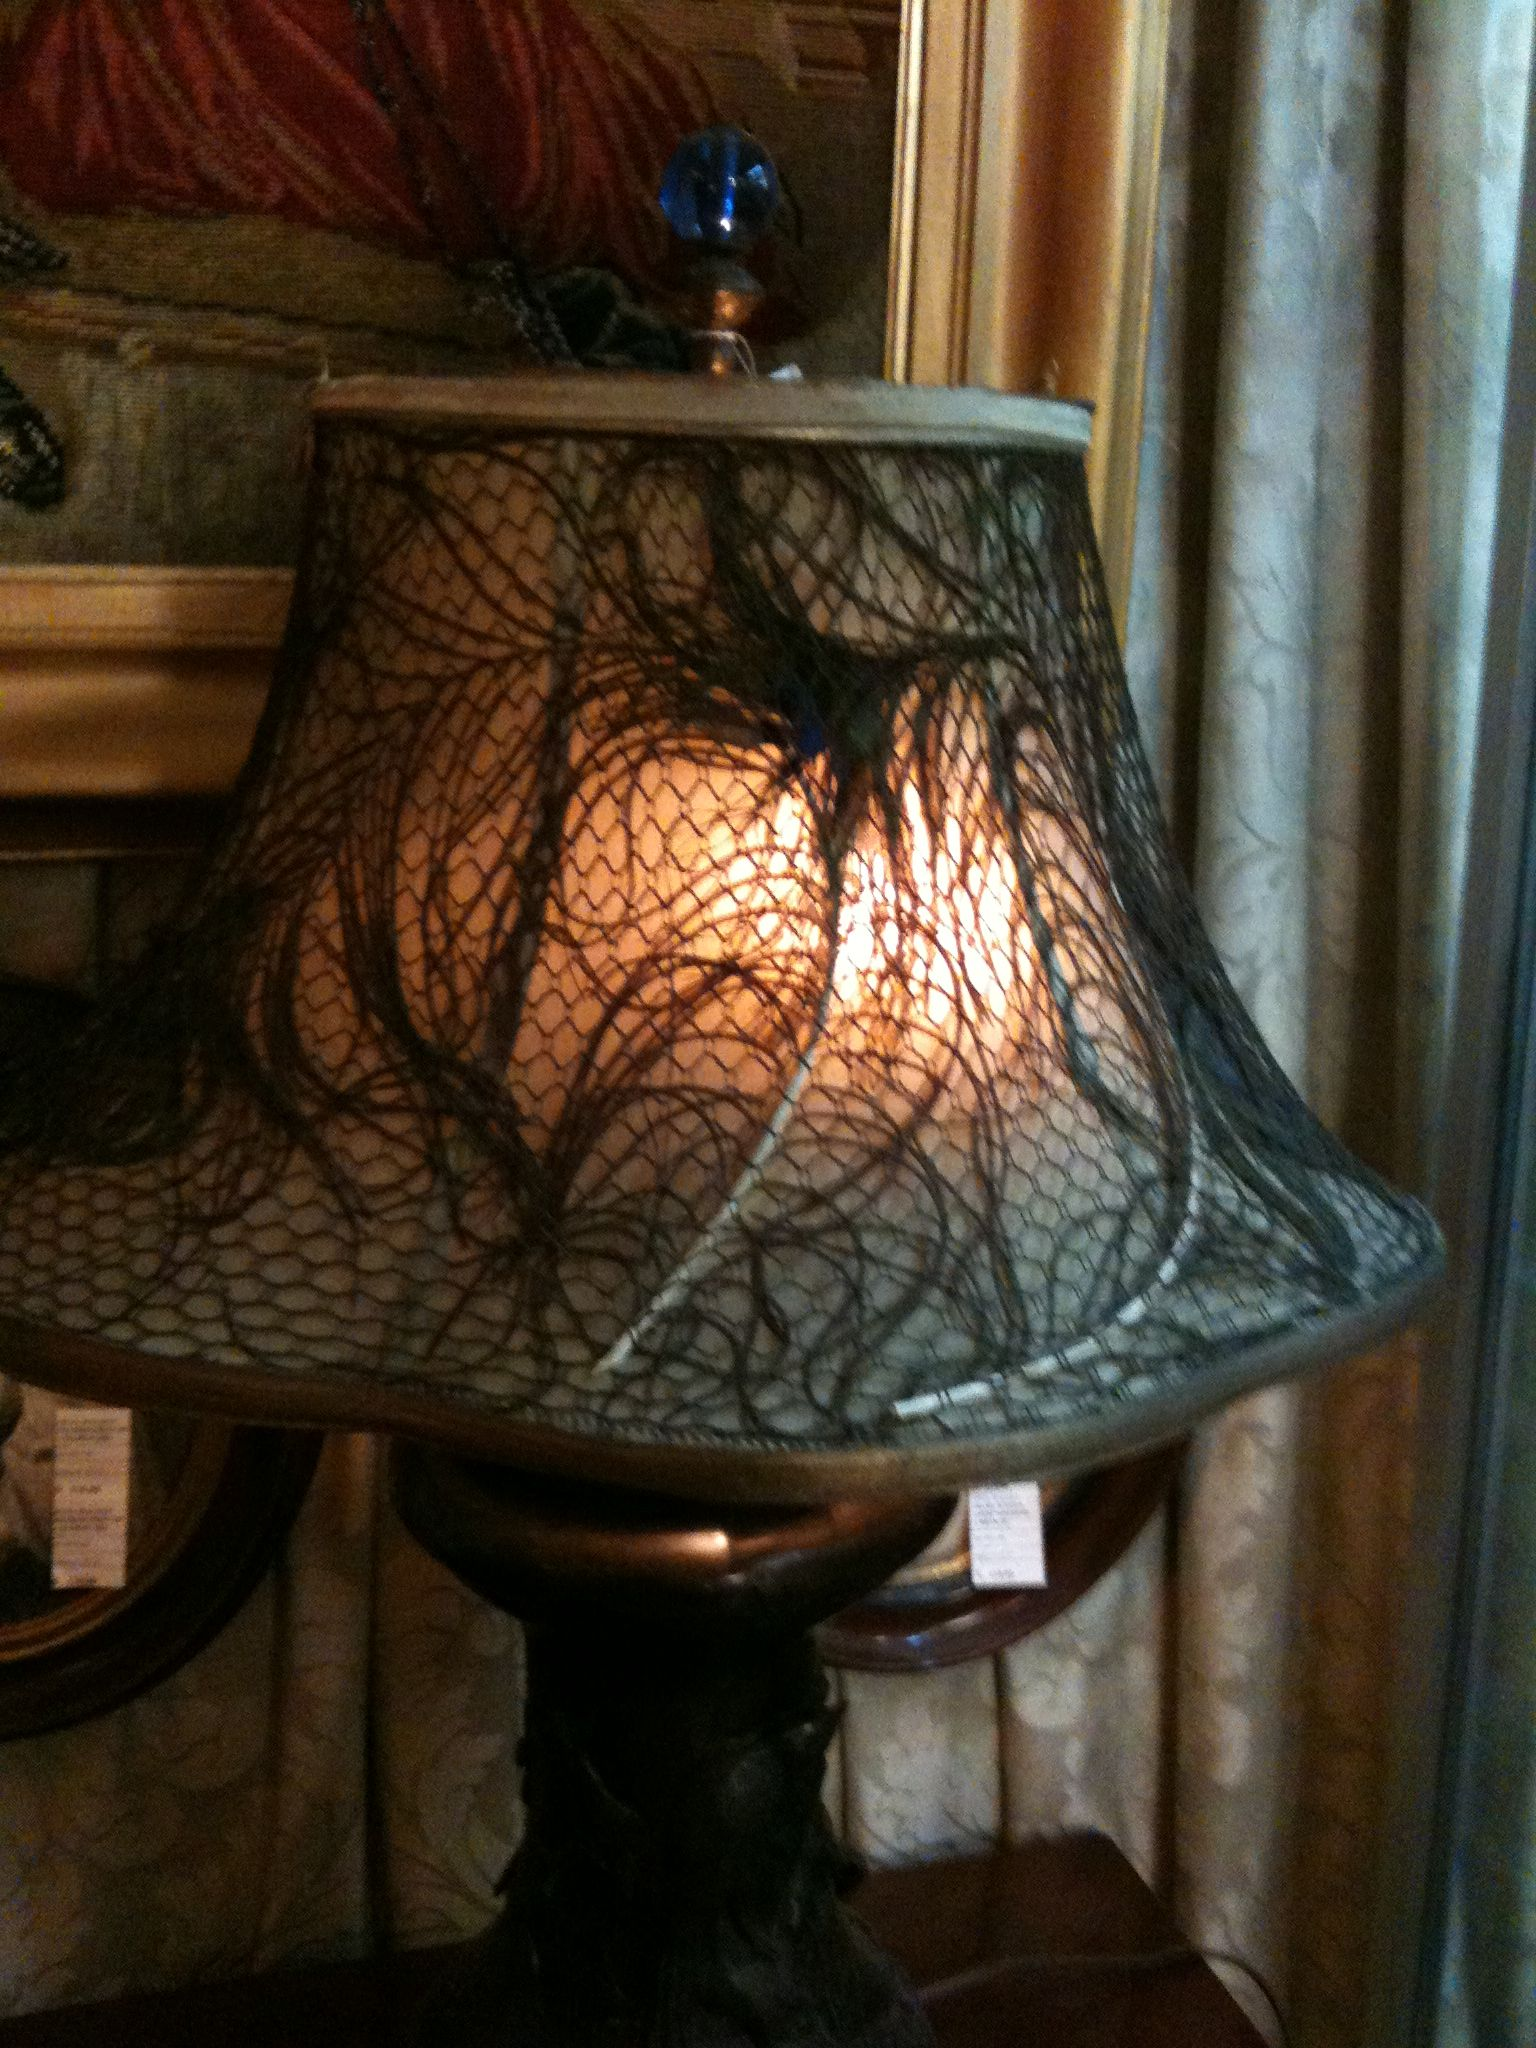 vintage lamp - love the textures here though I'm not sure why.